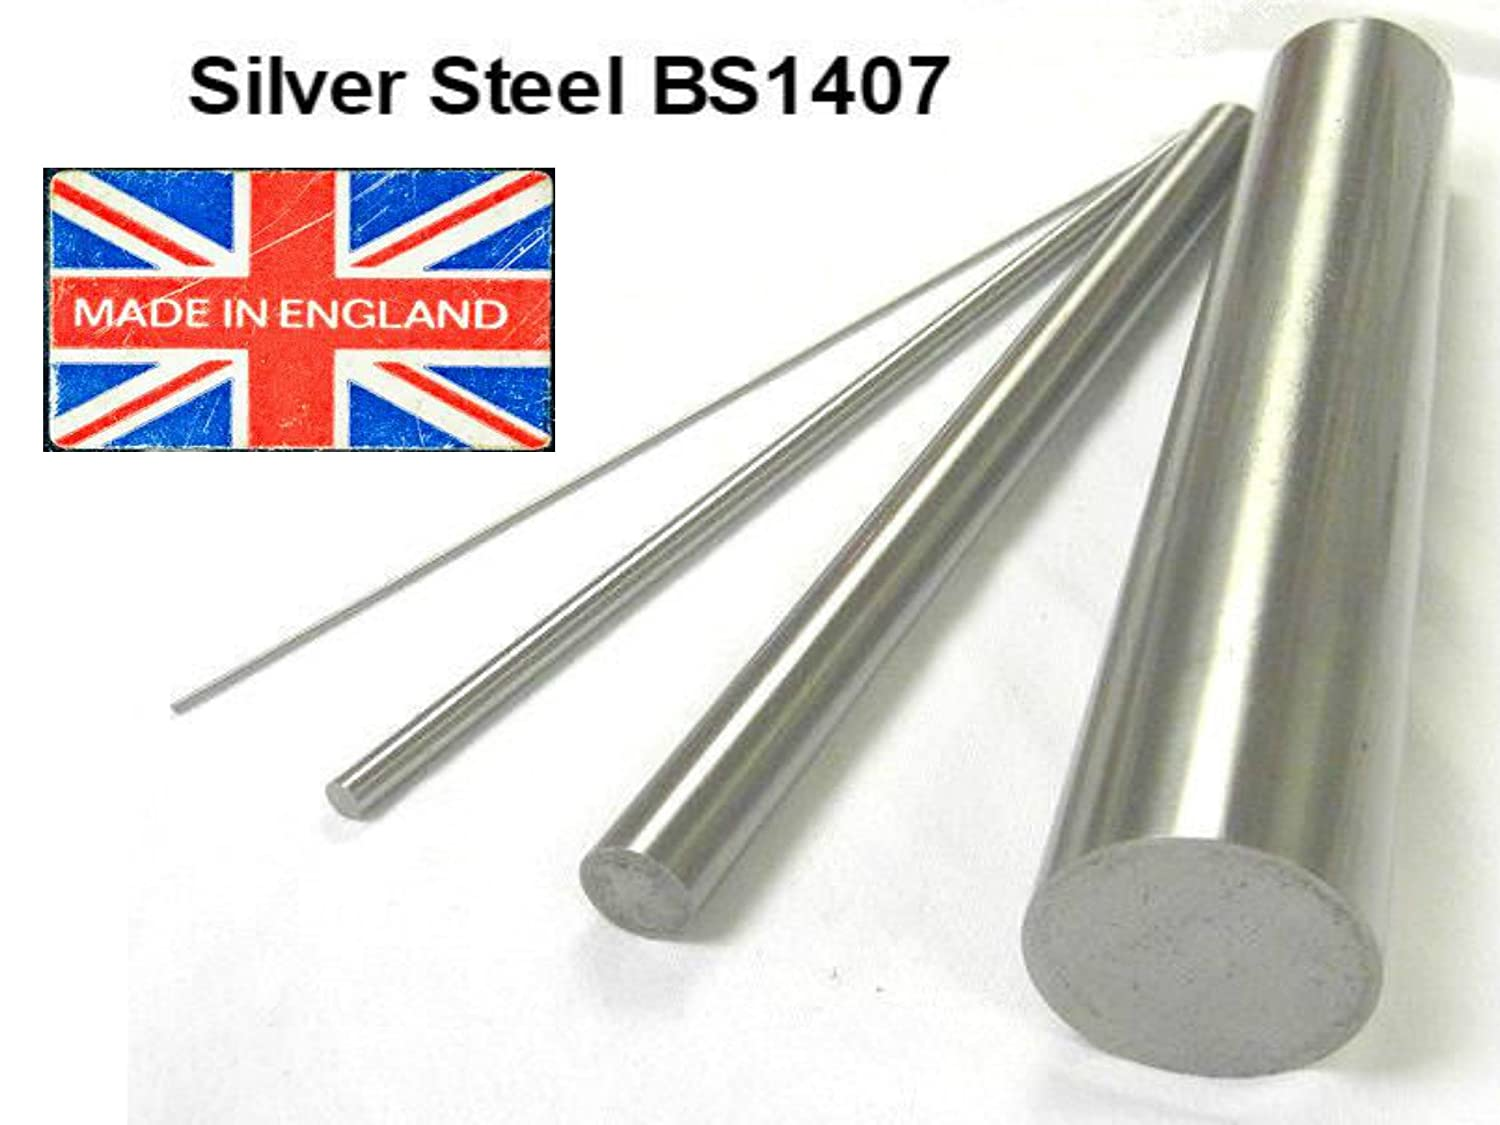 BS1407. Precision Ground Metric Round Rod Shaft Silver Steel Bar Long 3mm Diameter x 333mm 330mm